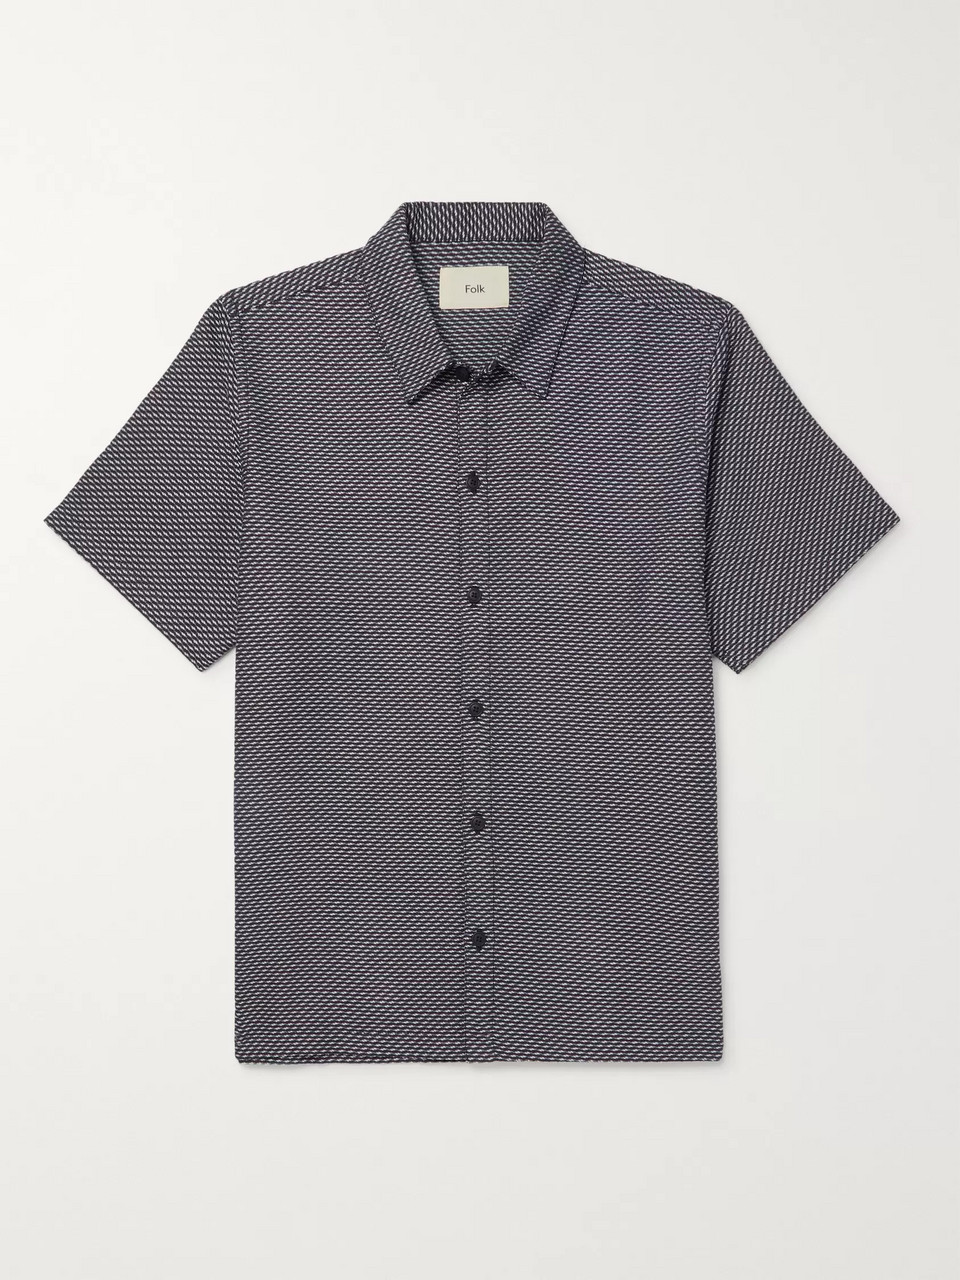 Folk Gabe Cotton-Jacquard Shirt